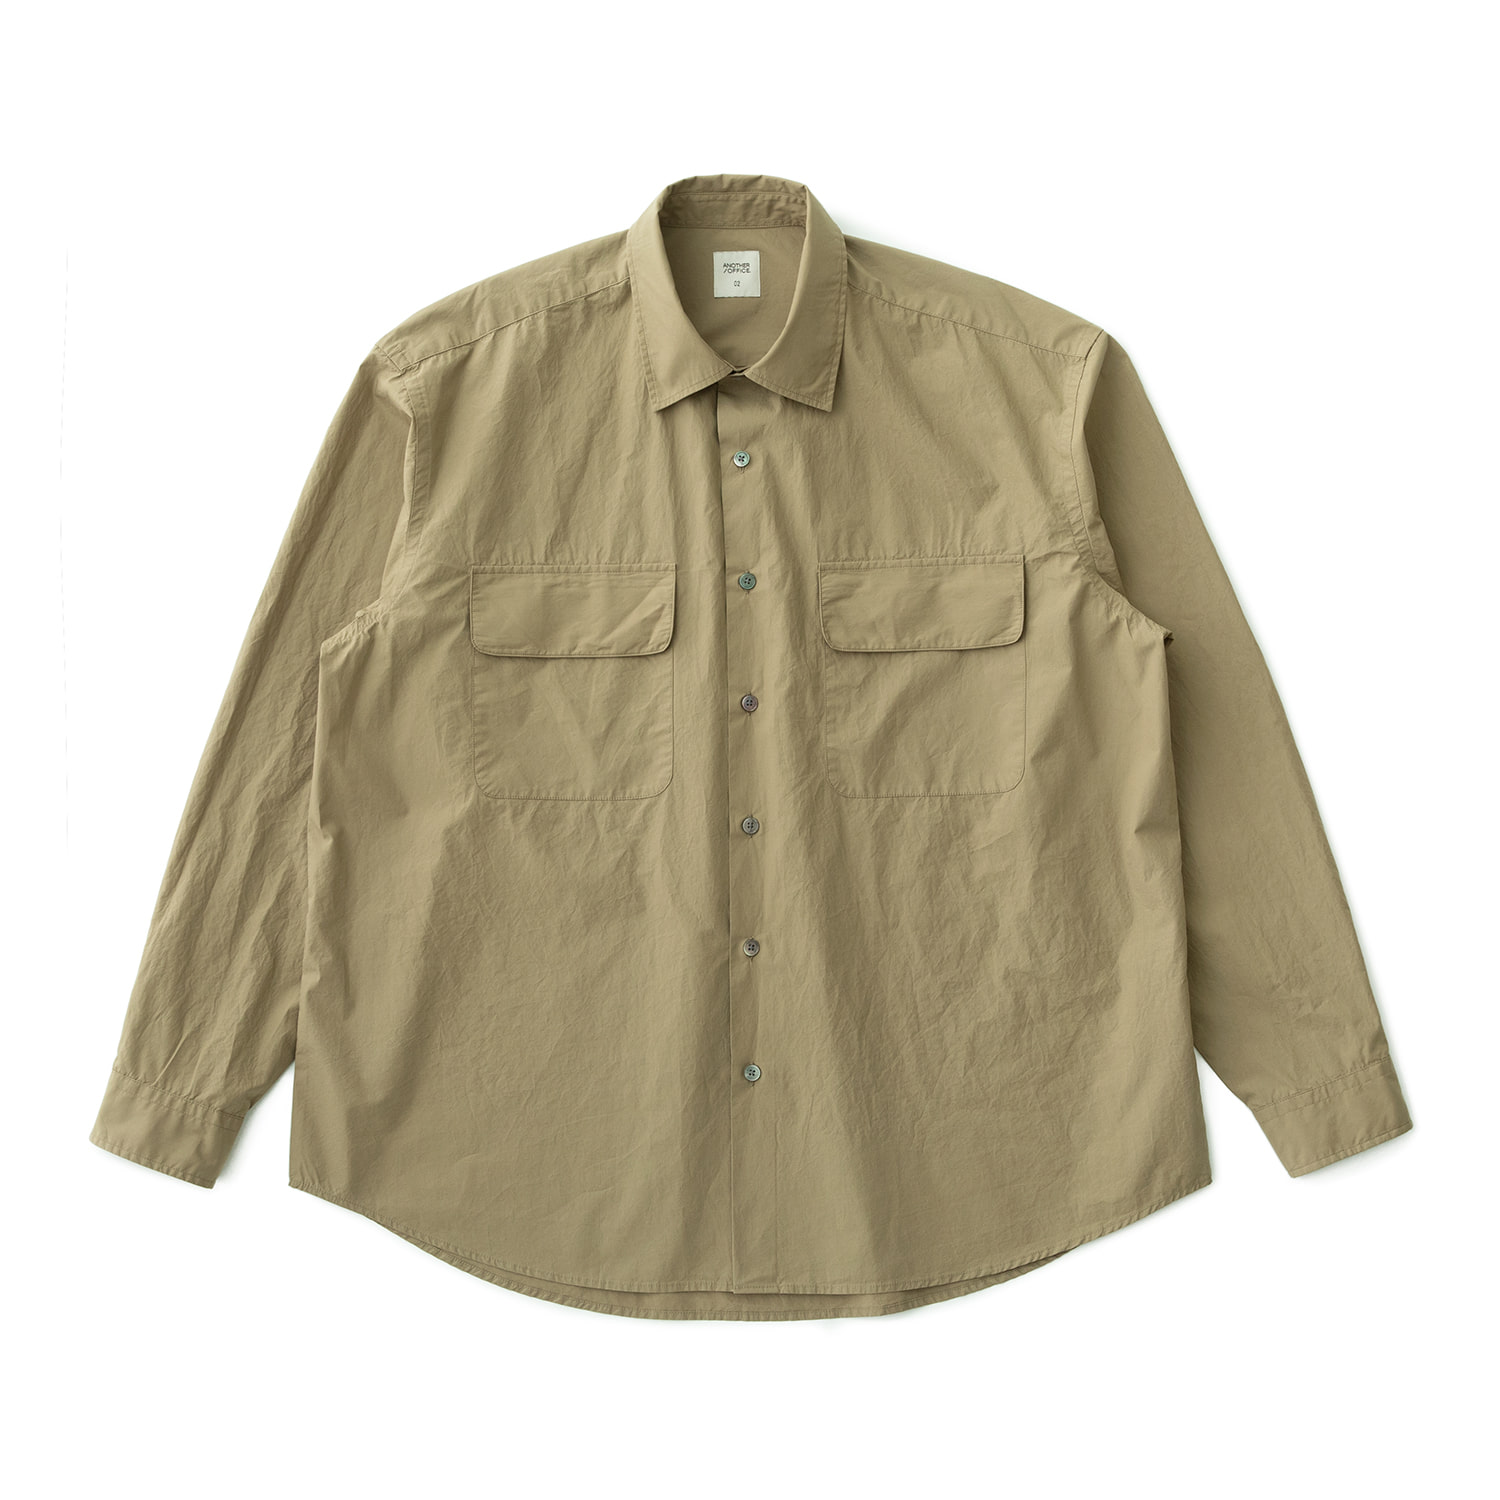 21SS Volume Shirt (Pale Khaki)